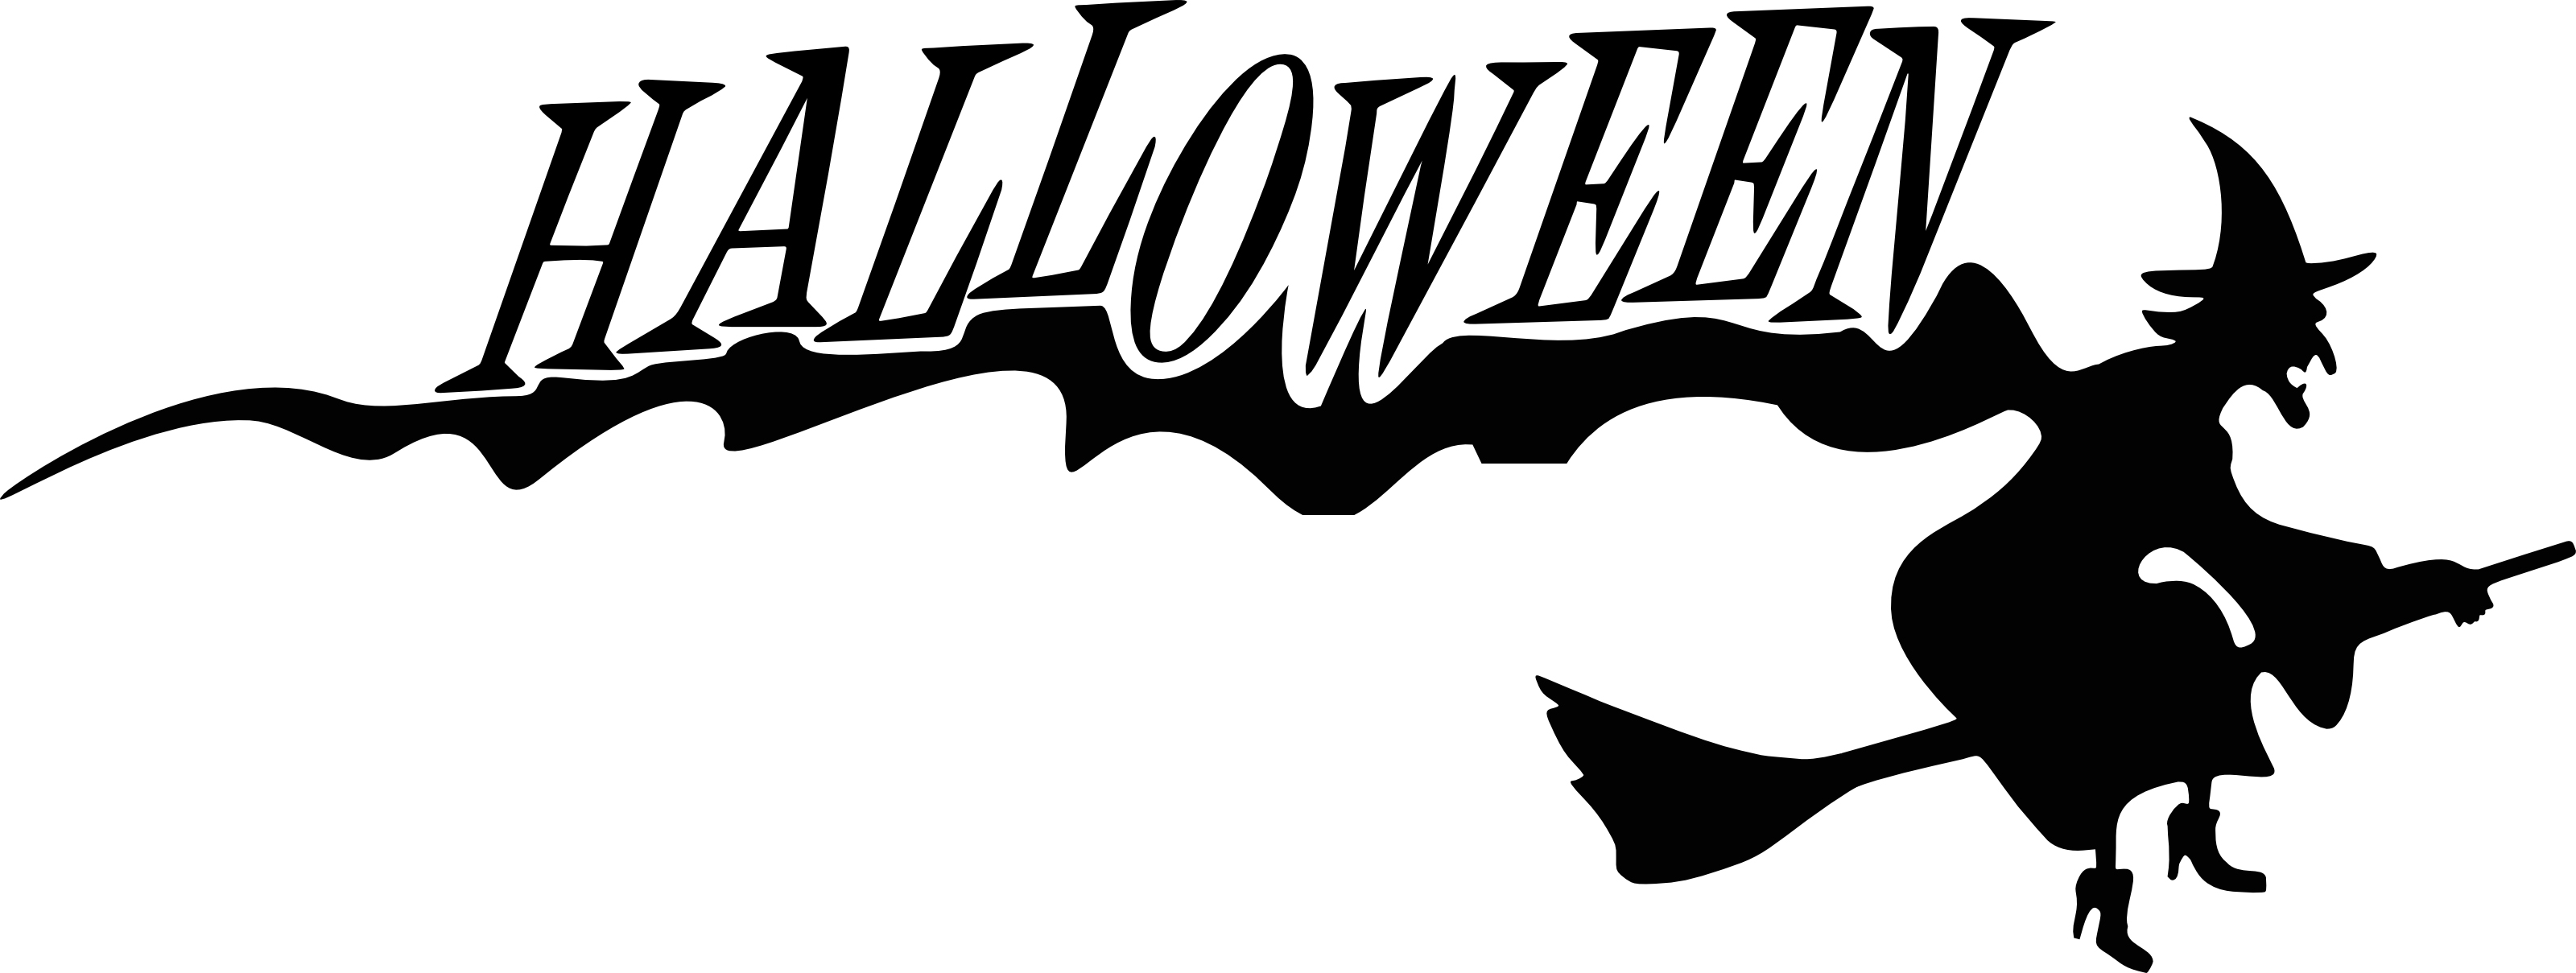 Halloween Background Png Transparent Hd image #26465